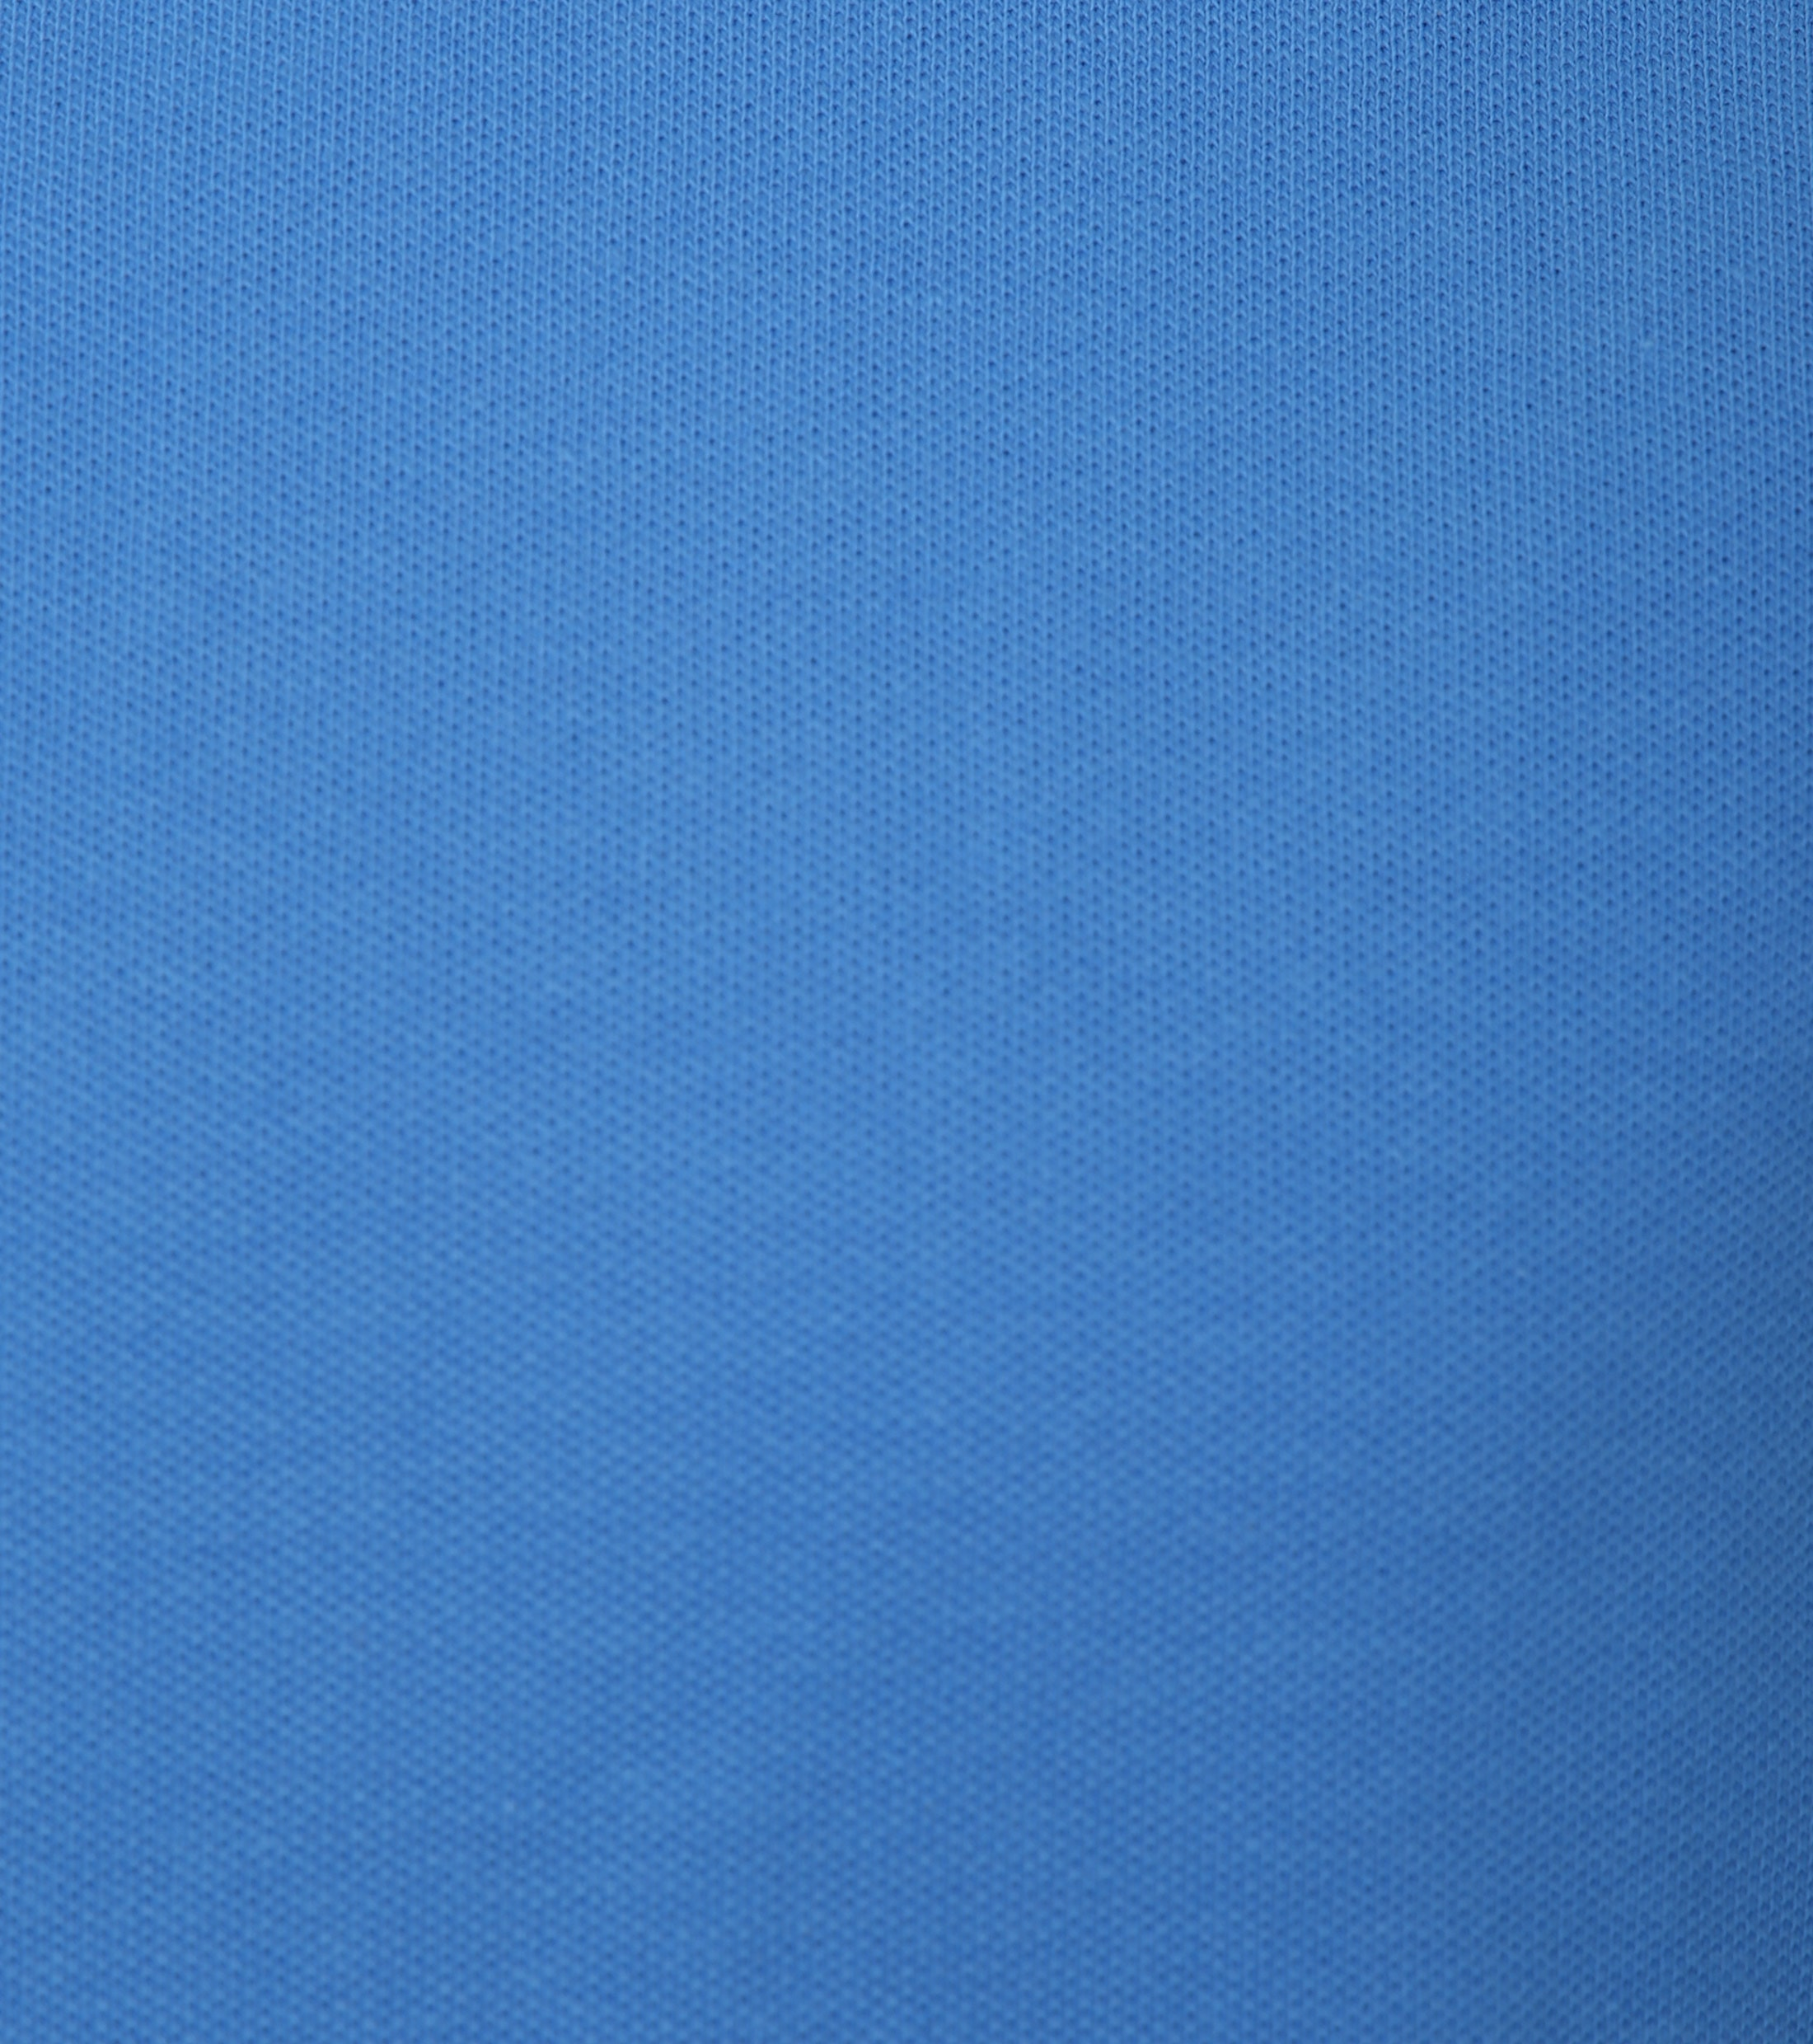 Suitable Polo Basic Blauw foto 2